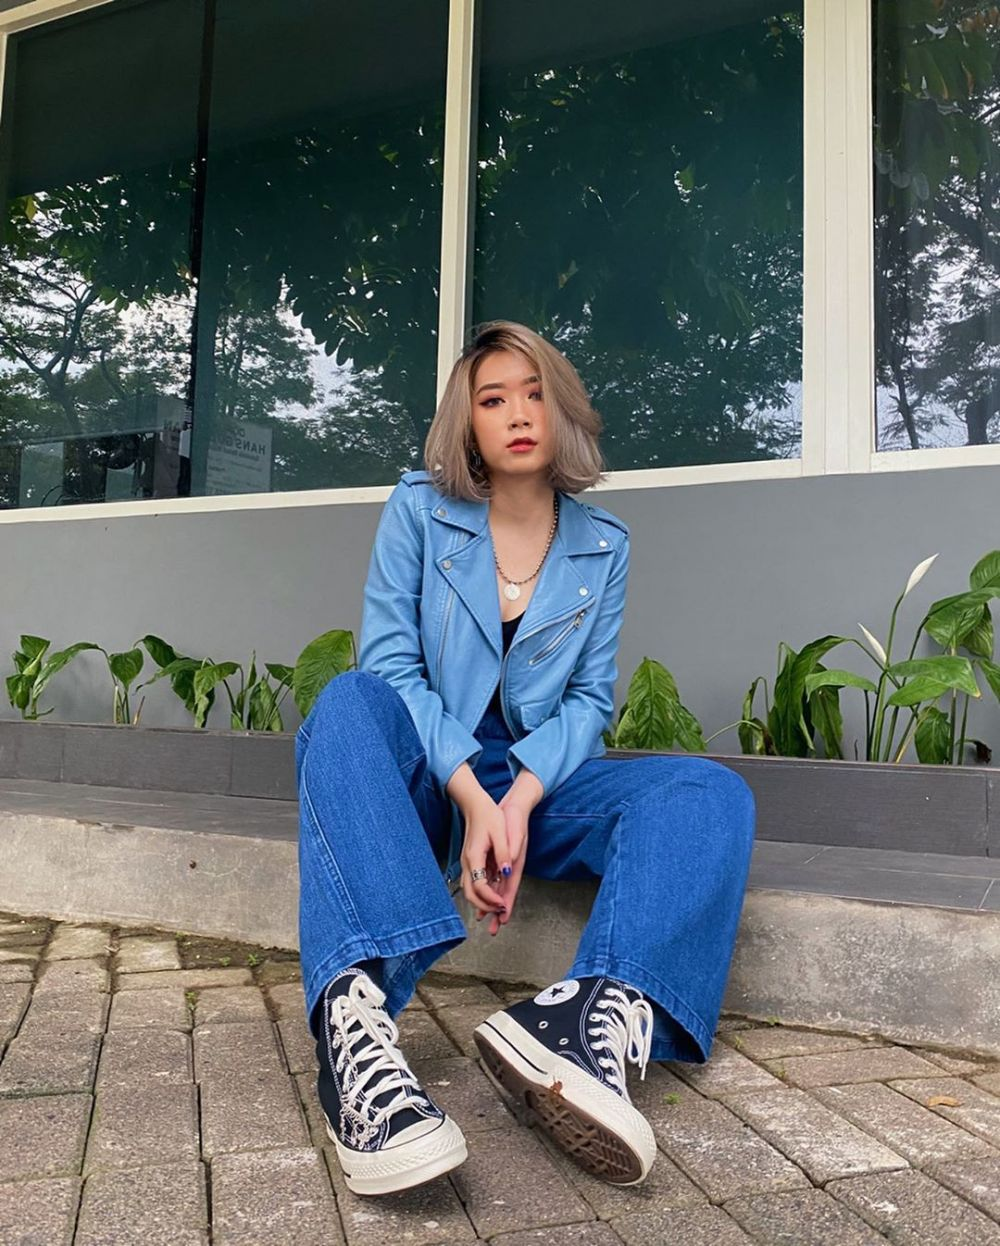 10 Ide Mix and Match Outfit dengan Sneakers ala Carina Agatha